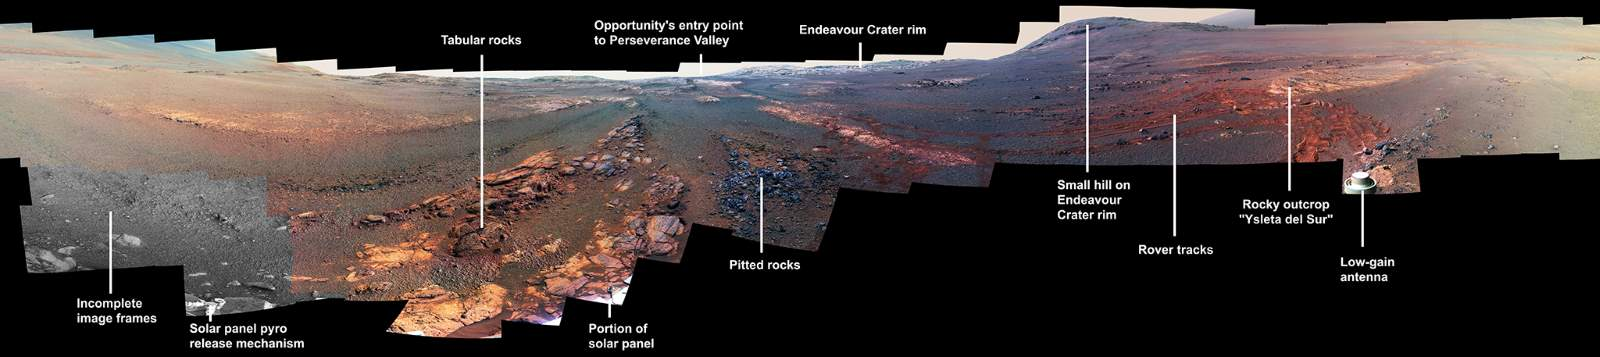 Opportunity Parting Mars Panorama (annotated)